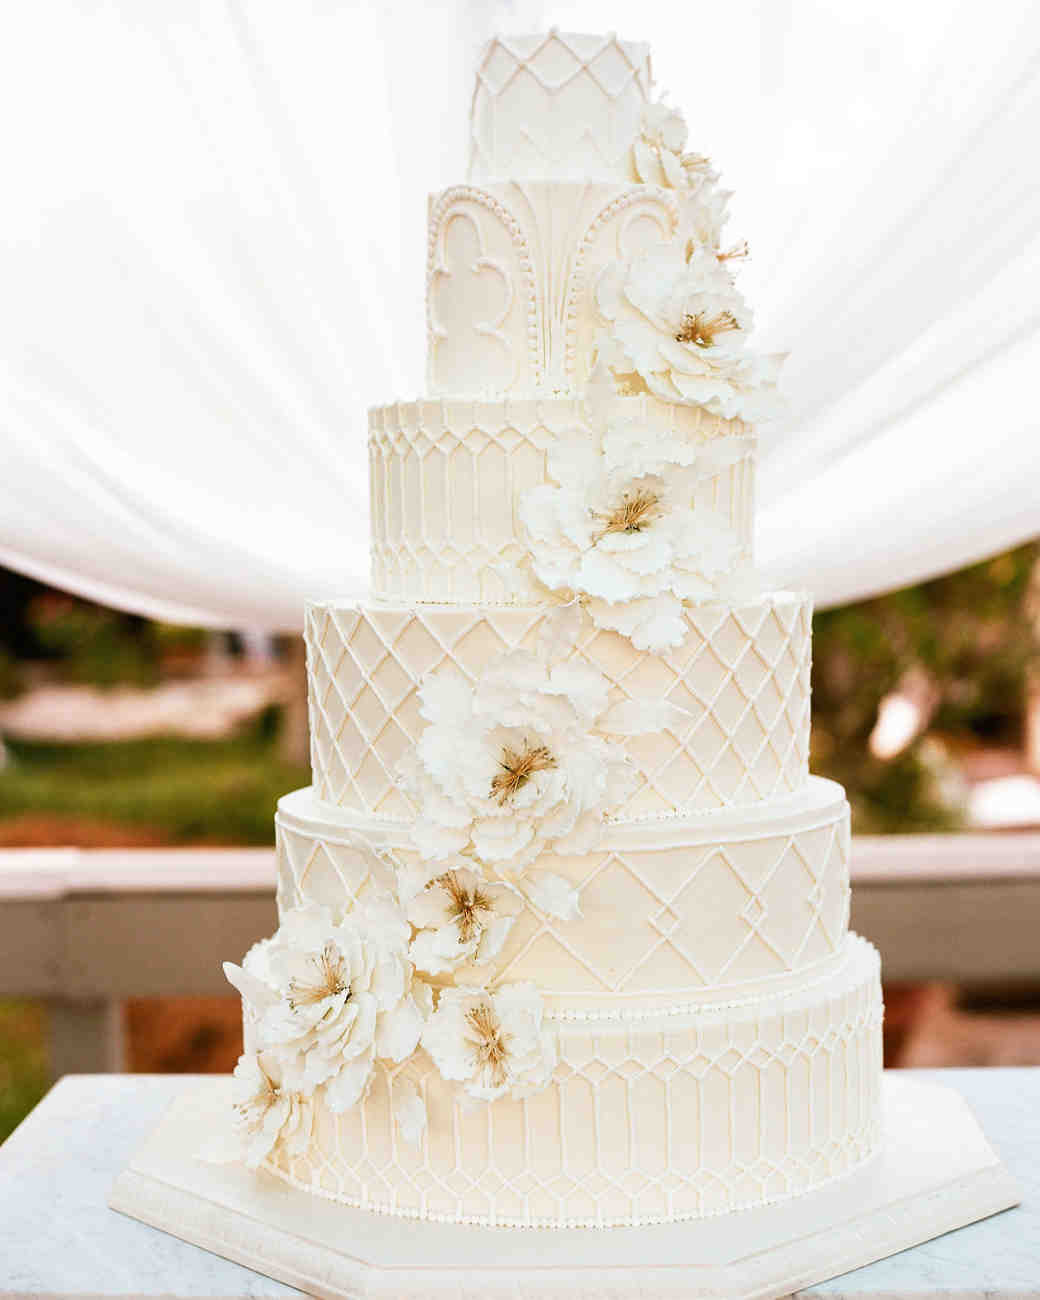 Wedding Cakes Pics  32 Amazing Wedding Cakes You Have to See to Believe